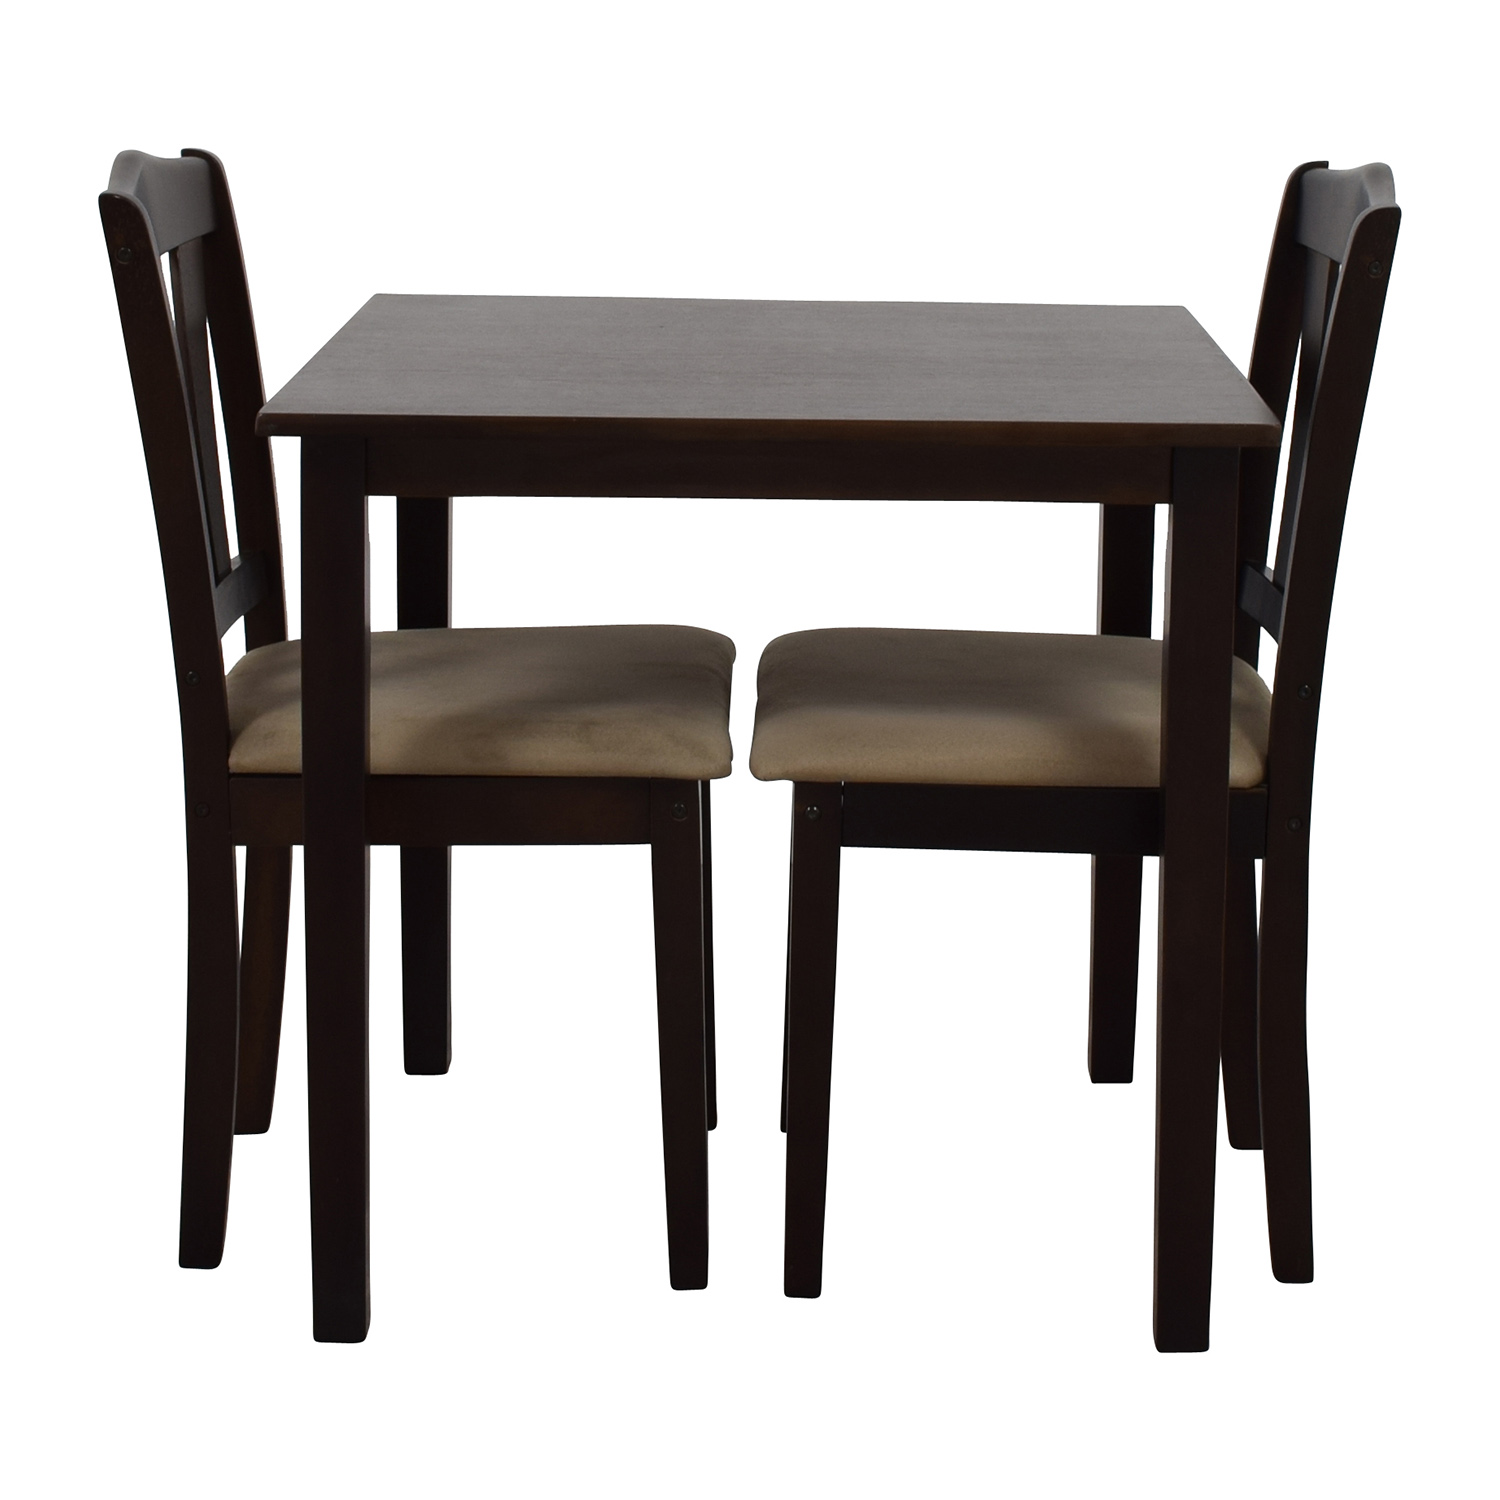 Dining sets used dining sets for sale Wooden dining table and chairs